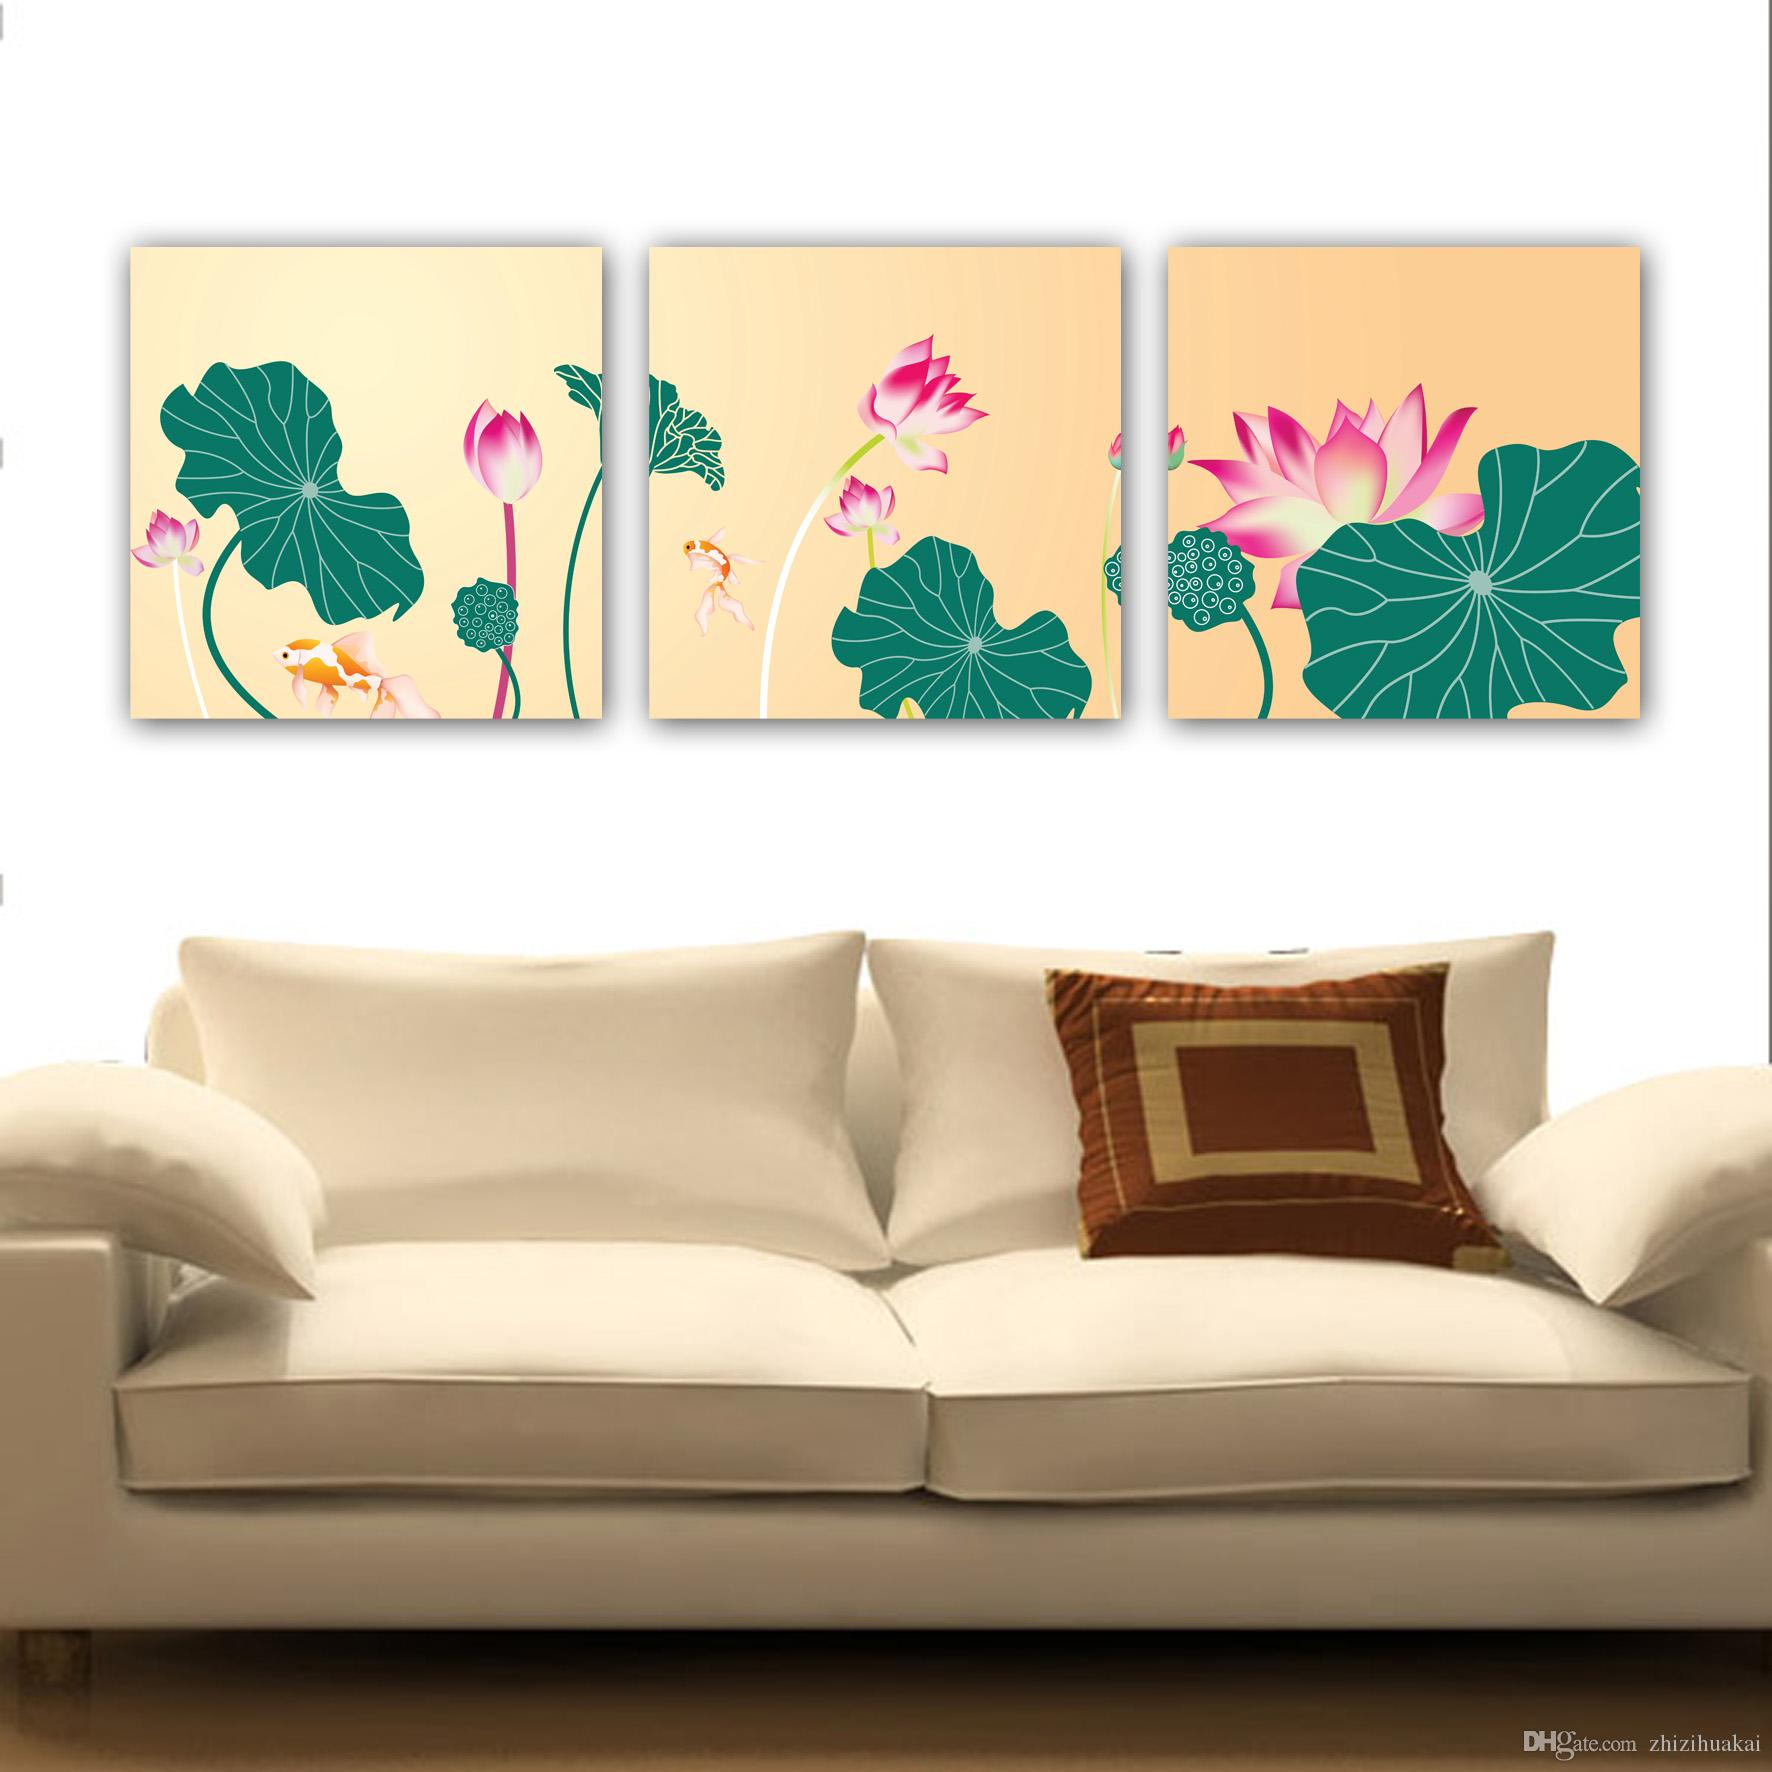 unframed art picture Home decoration Canvas Prints eagle Great Wall of China mountain Lotus leaf Abstract painting coconut tree sea